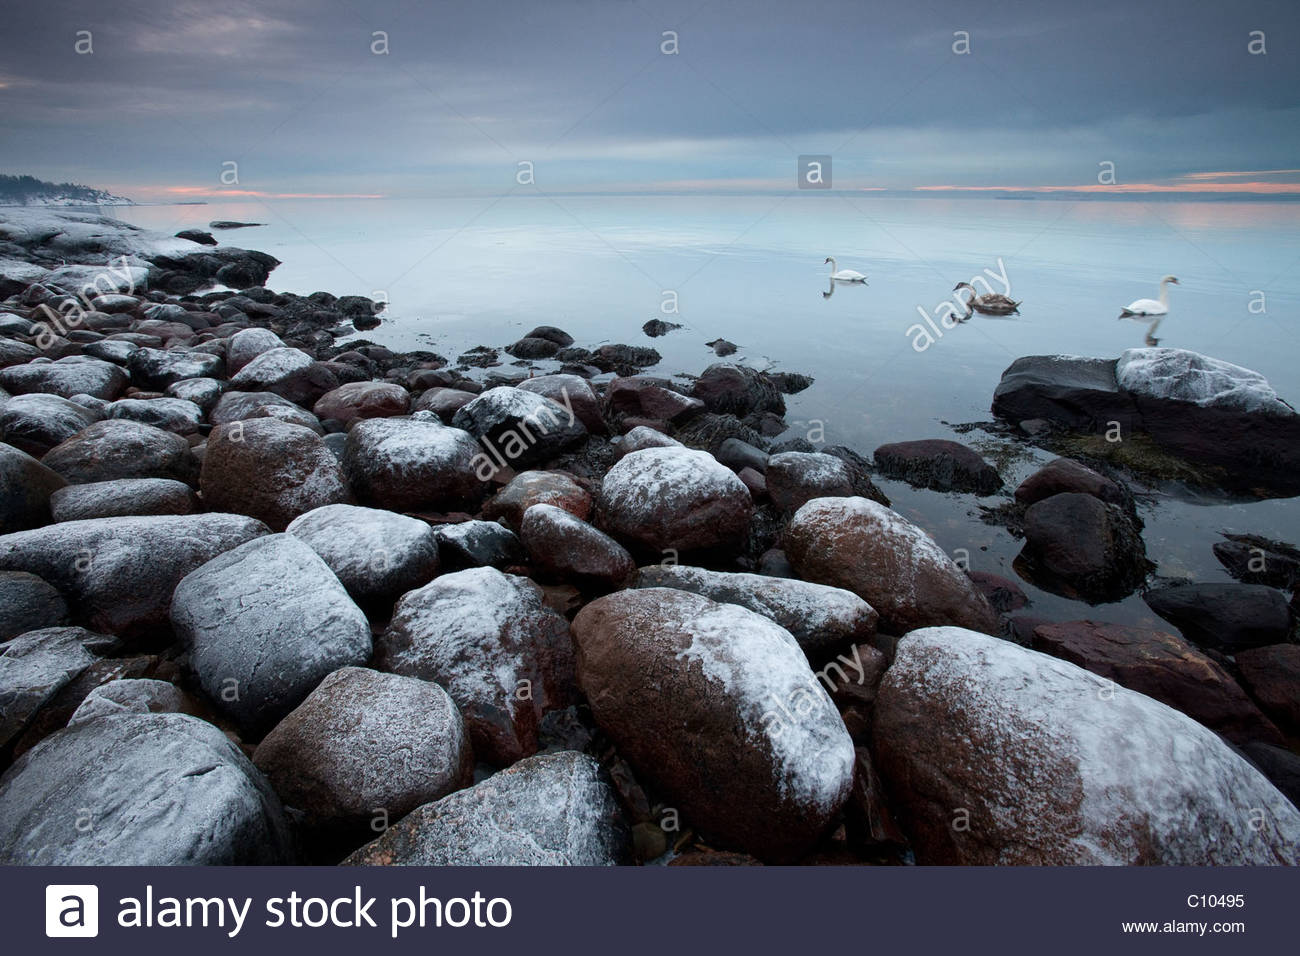 Coastal winter landscape and Mute Swan family at Larkollen in Rygge kommune, Østfold fylke, southeastern Norway. - Stock Image